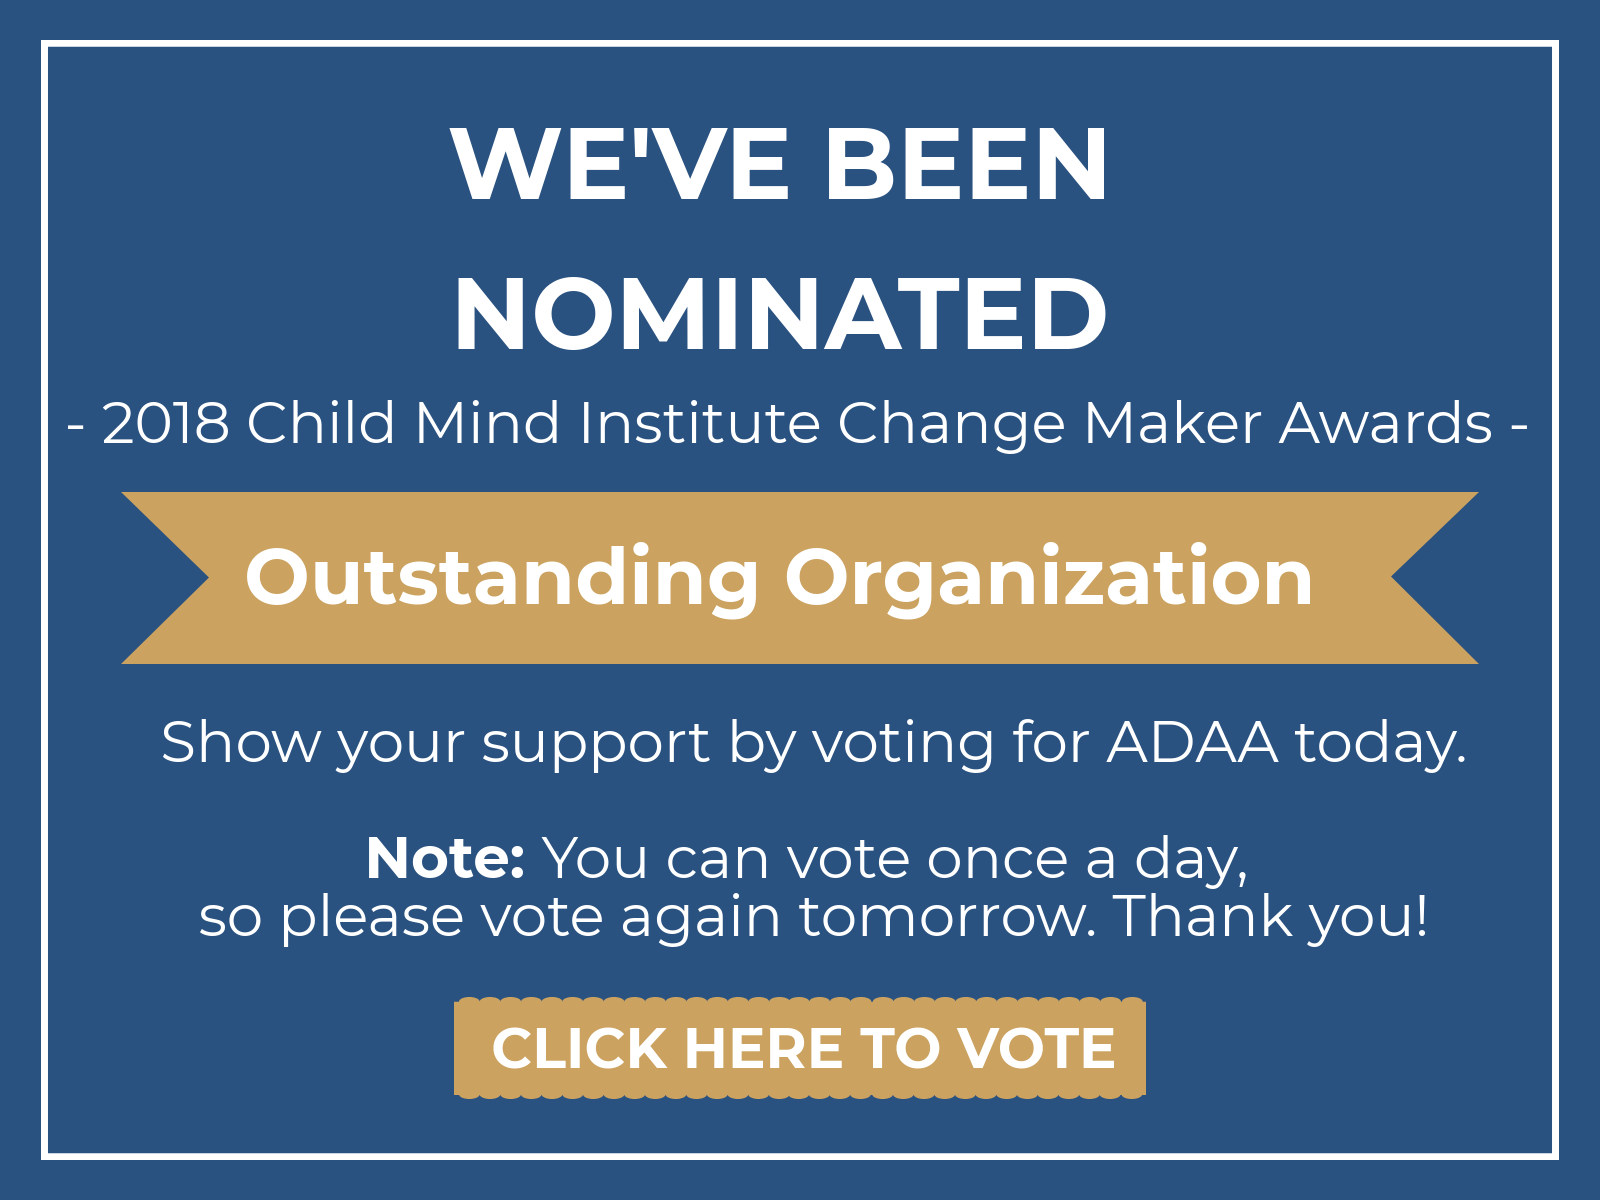 Vote ADAA for the Change Maker Awards